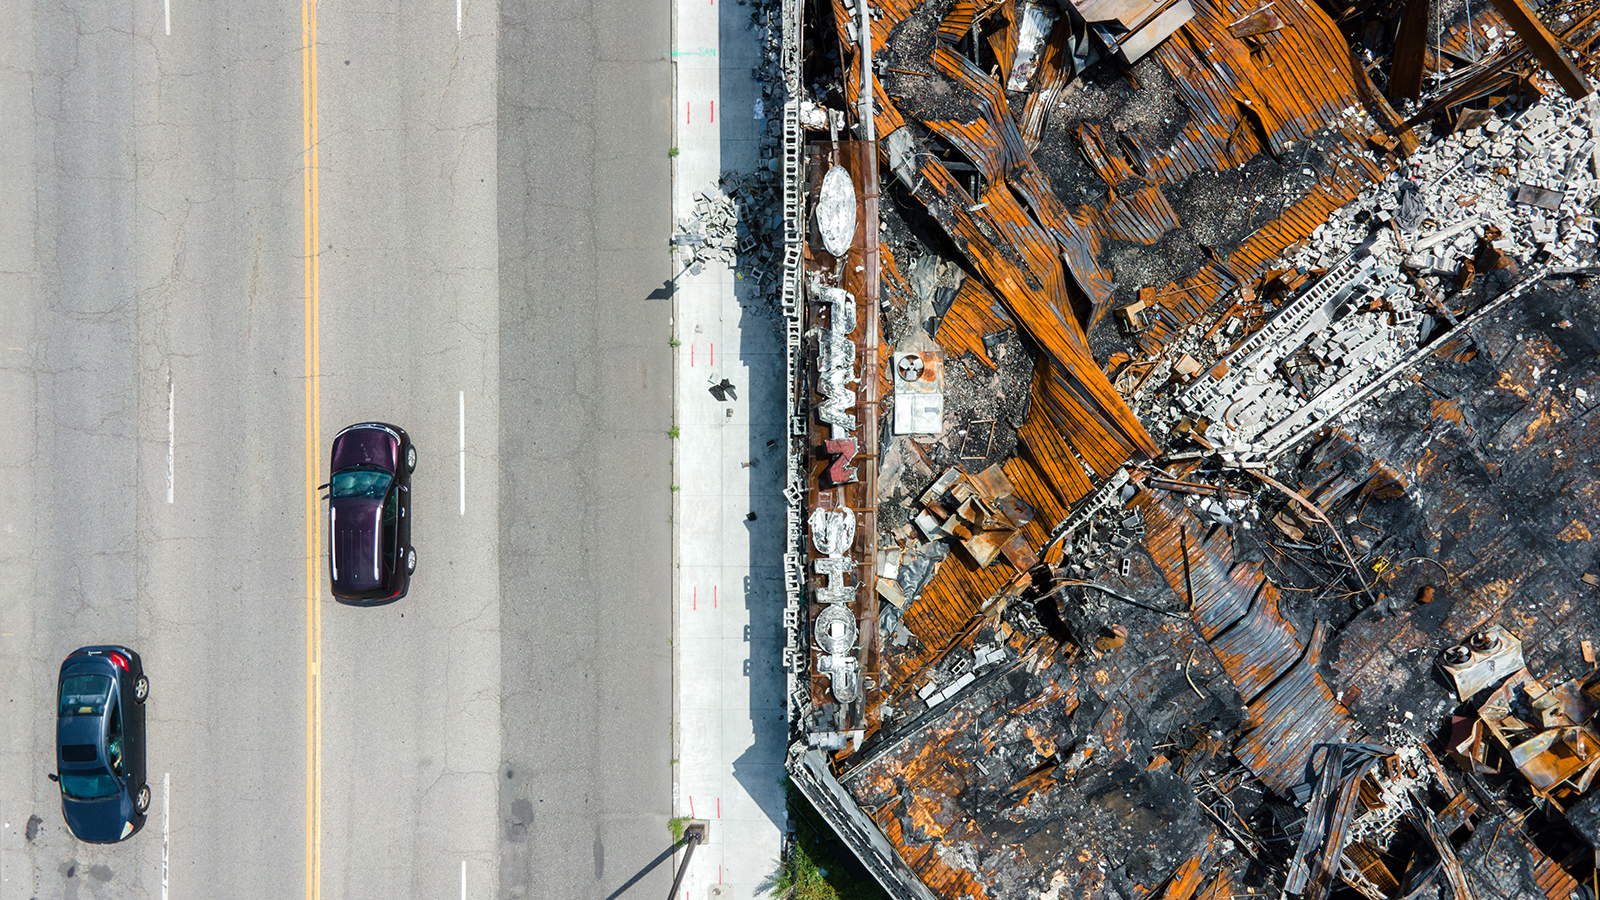 MINNEAPOLIS—Vehicles drive by a pawn shop, which was gutted, during the unrest following the murder of George Floyd.